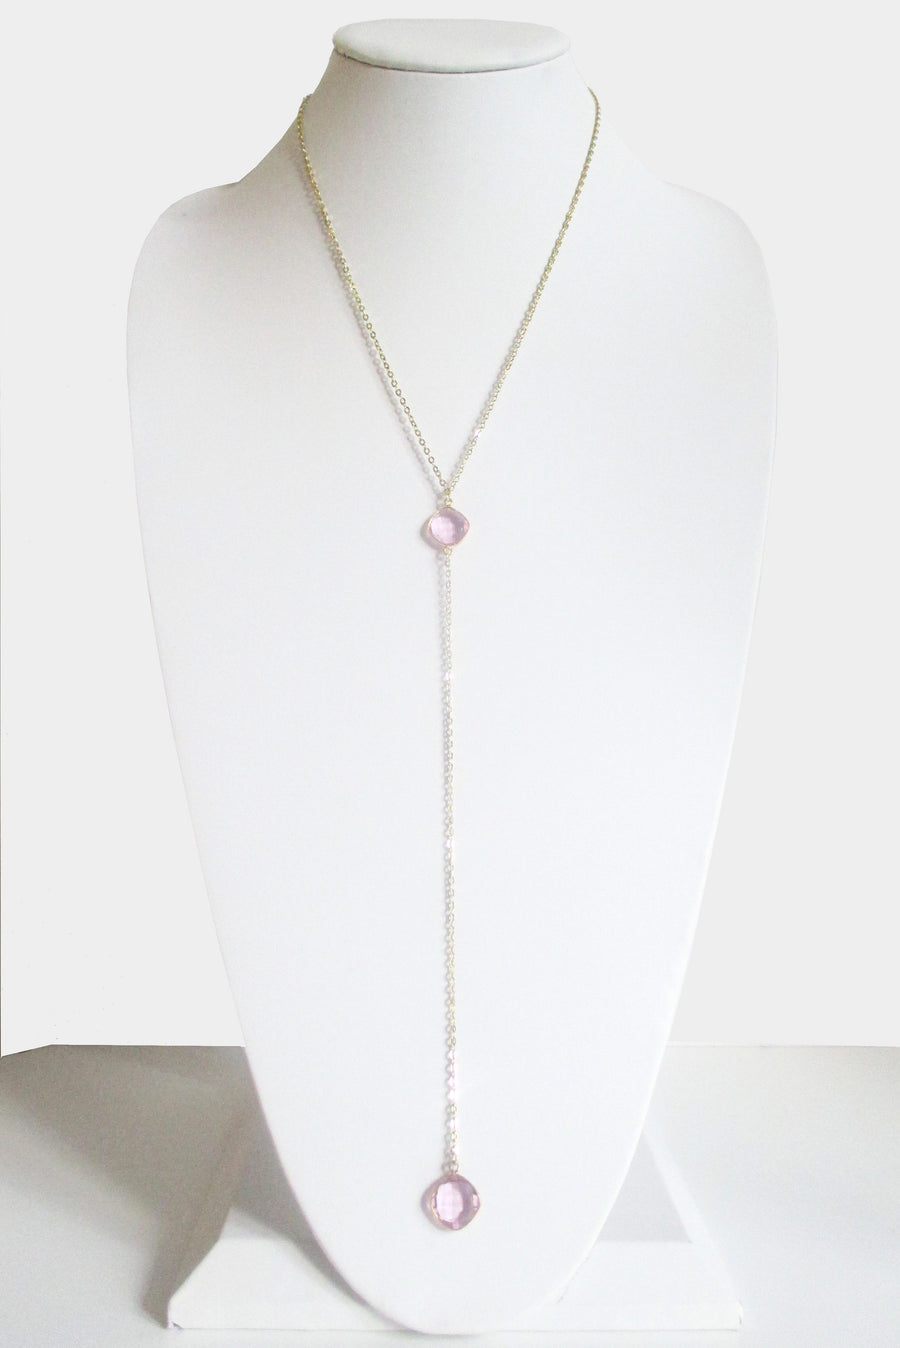 CELESTE Y NECKLACE ROSE PINK